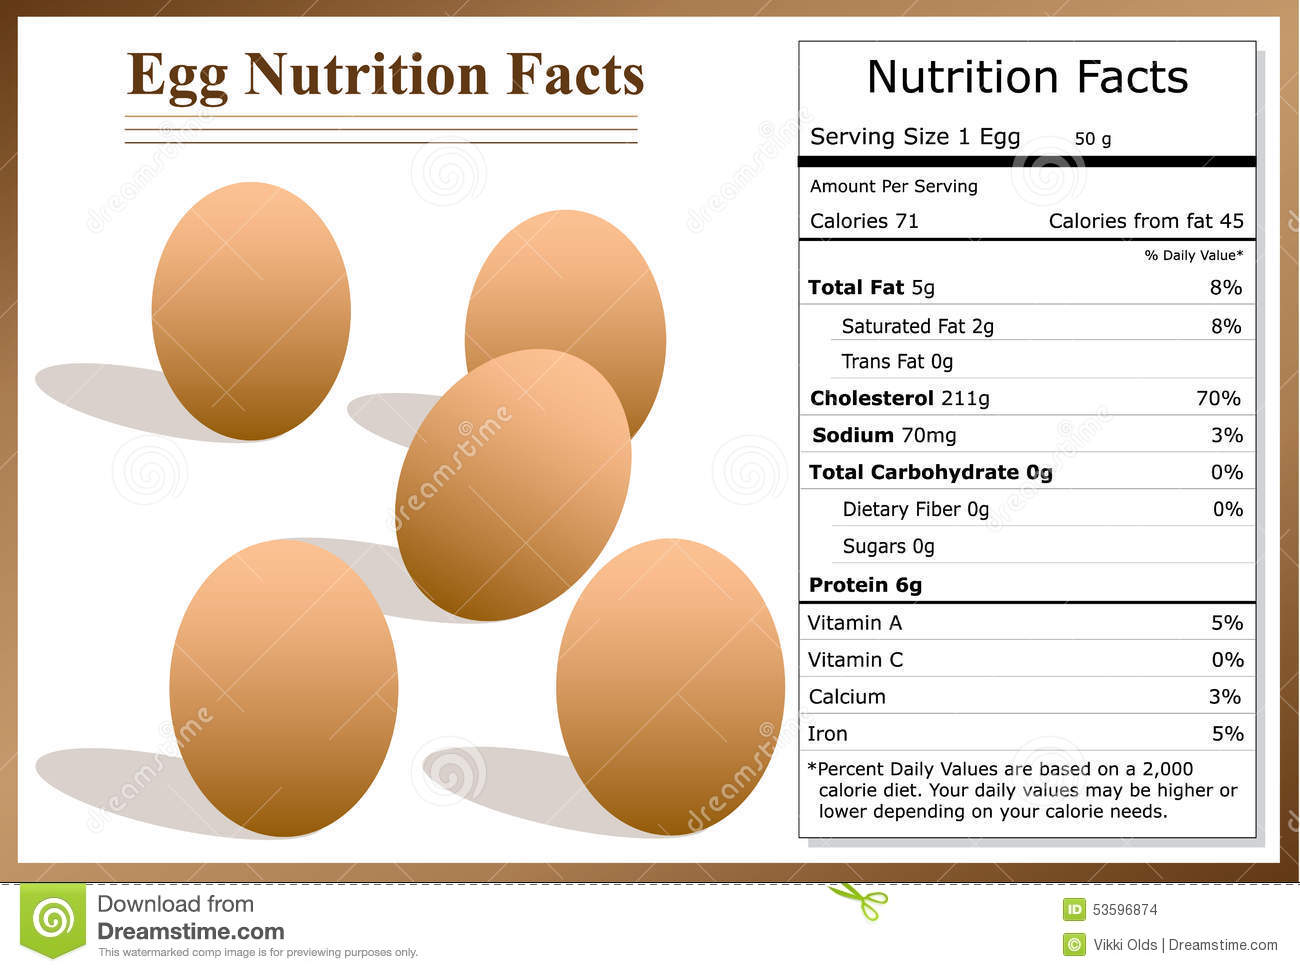 What is the nutritional value of egg whites